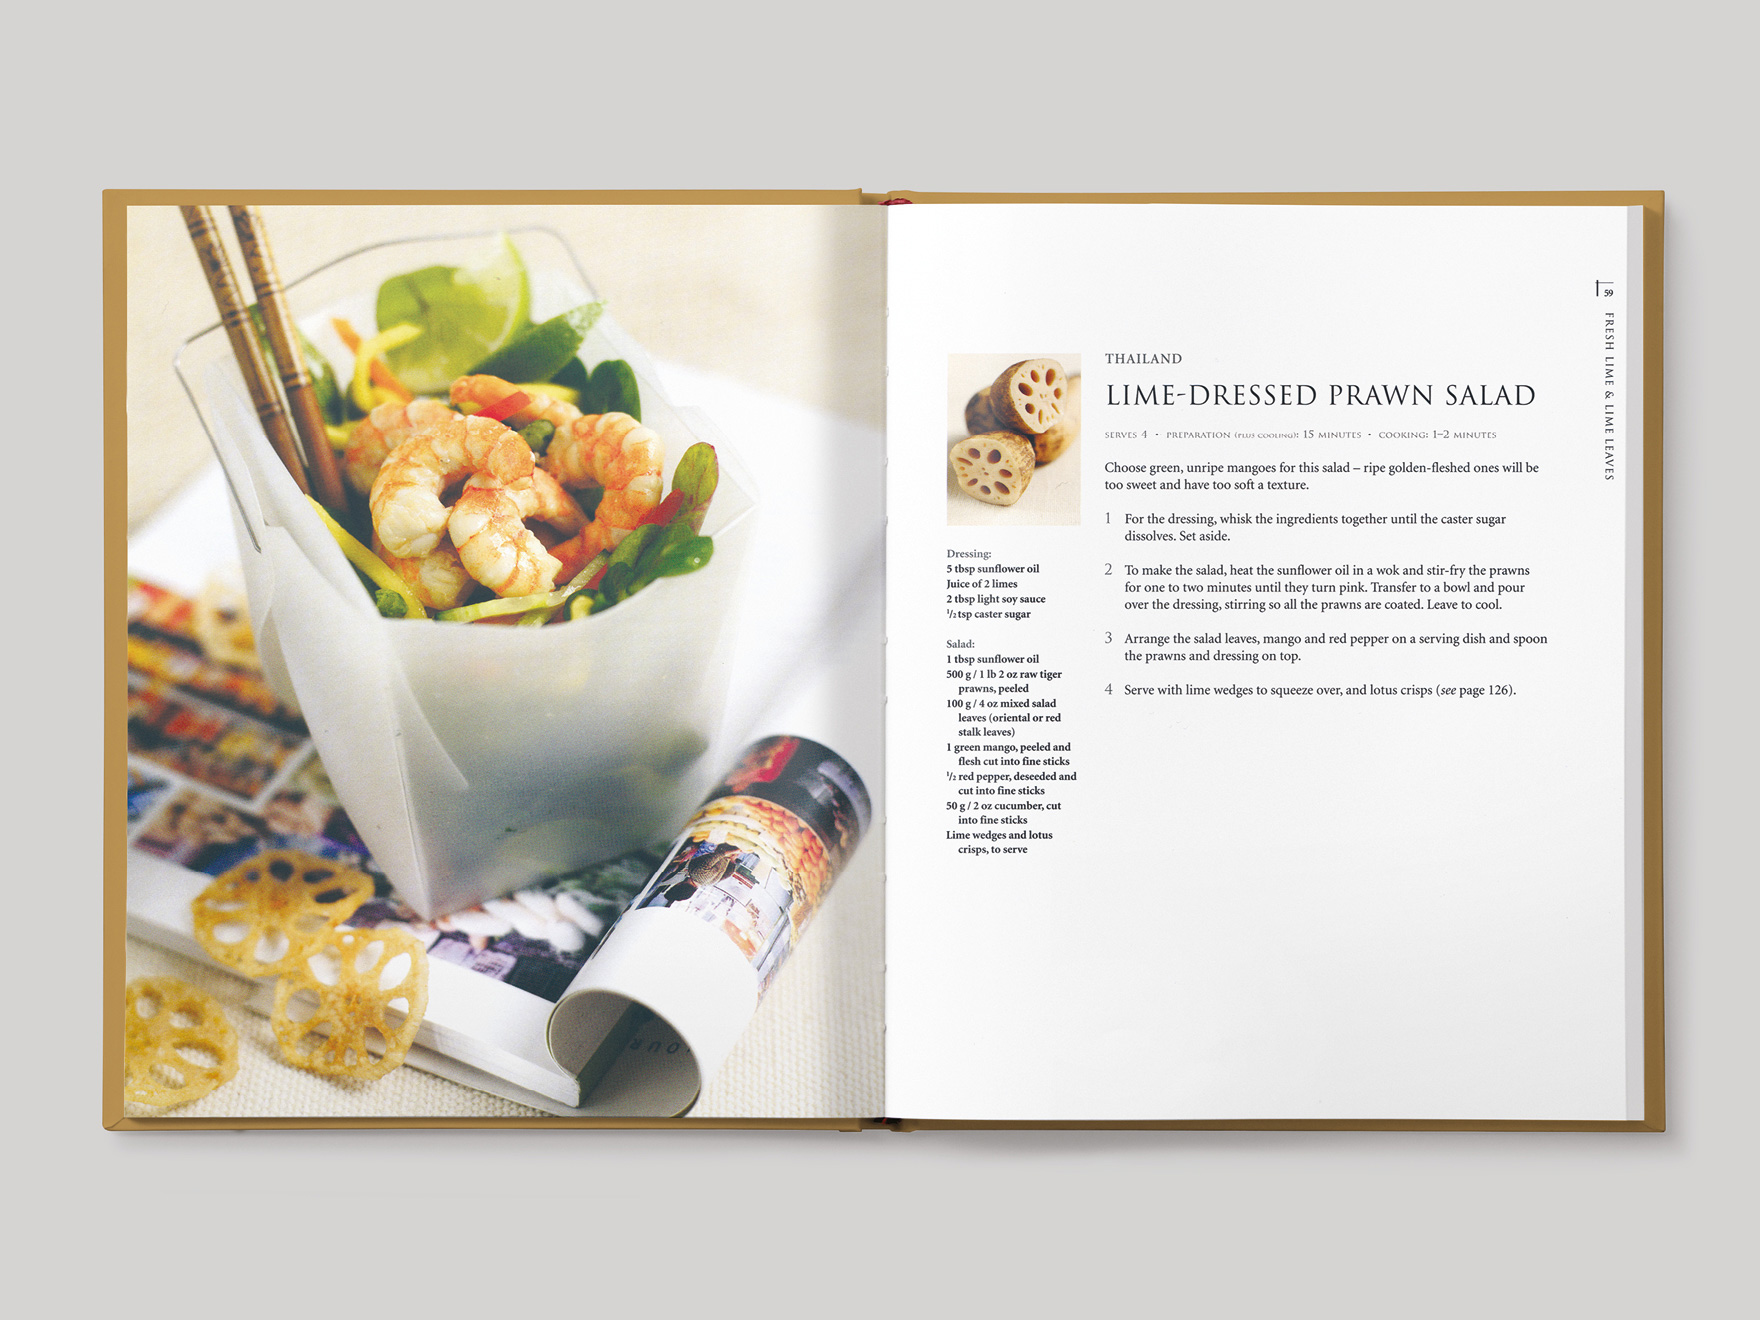 Inside book pages from Asian Flavours showing a recipe for lime dressed prawn salad